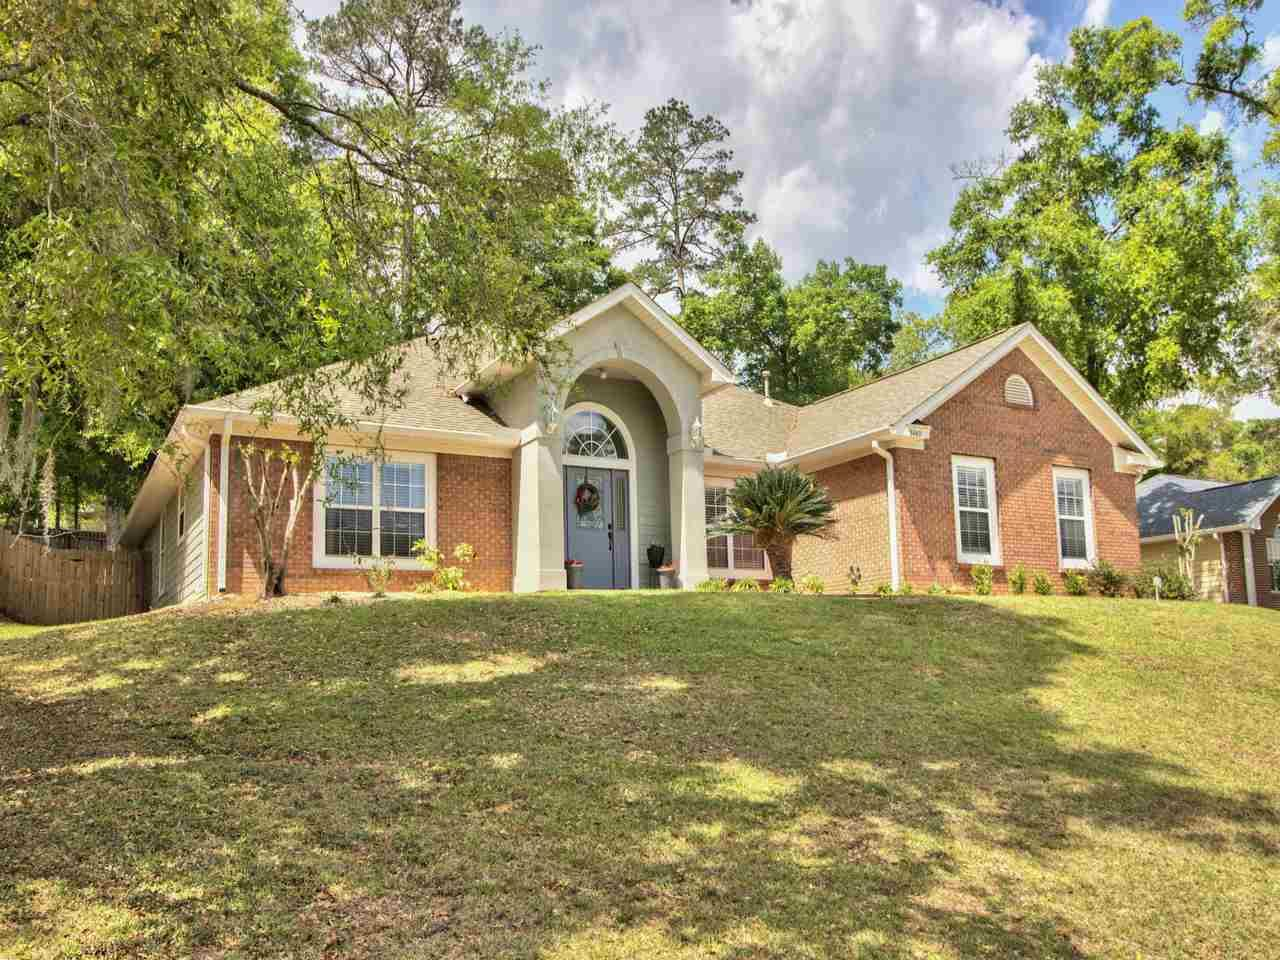 Photo of 5440 Paces Mill Road, TALLAHASSEE, FL 32309 (MLS # 317367)